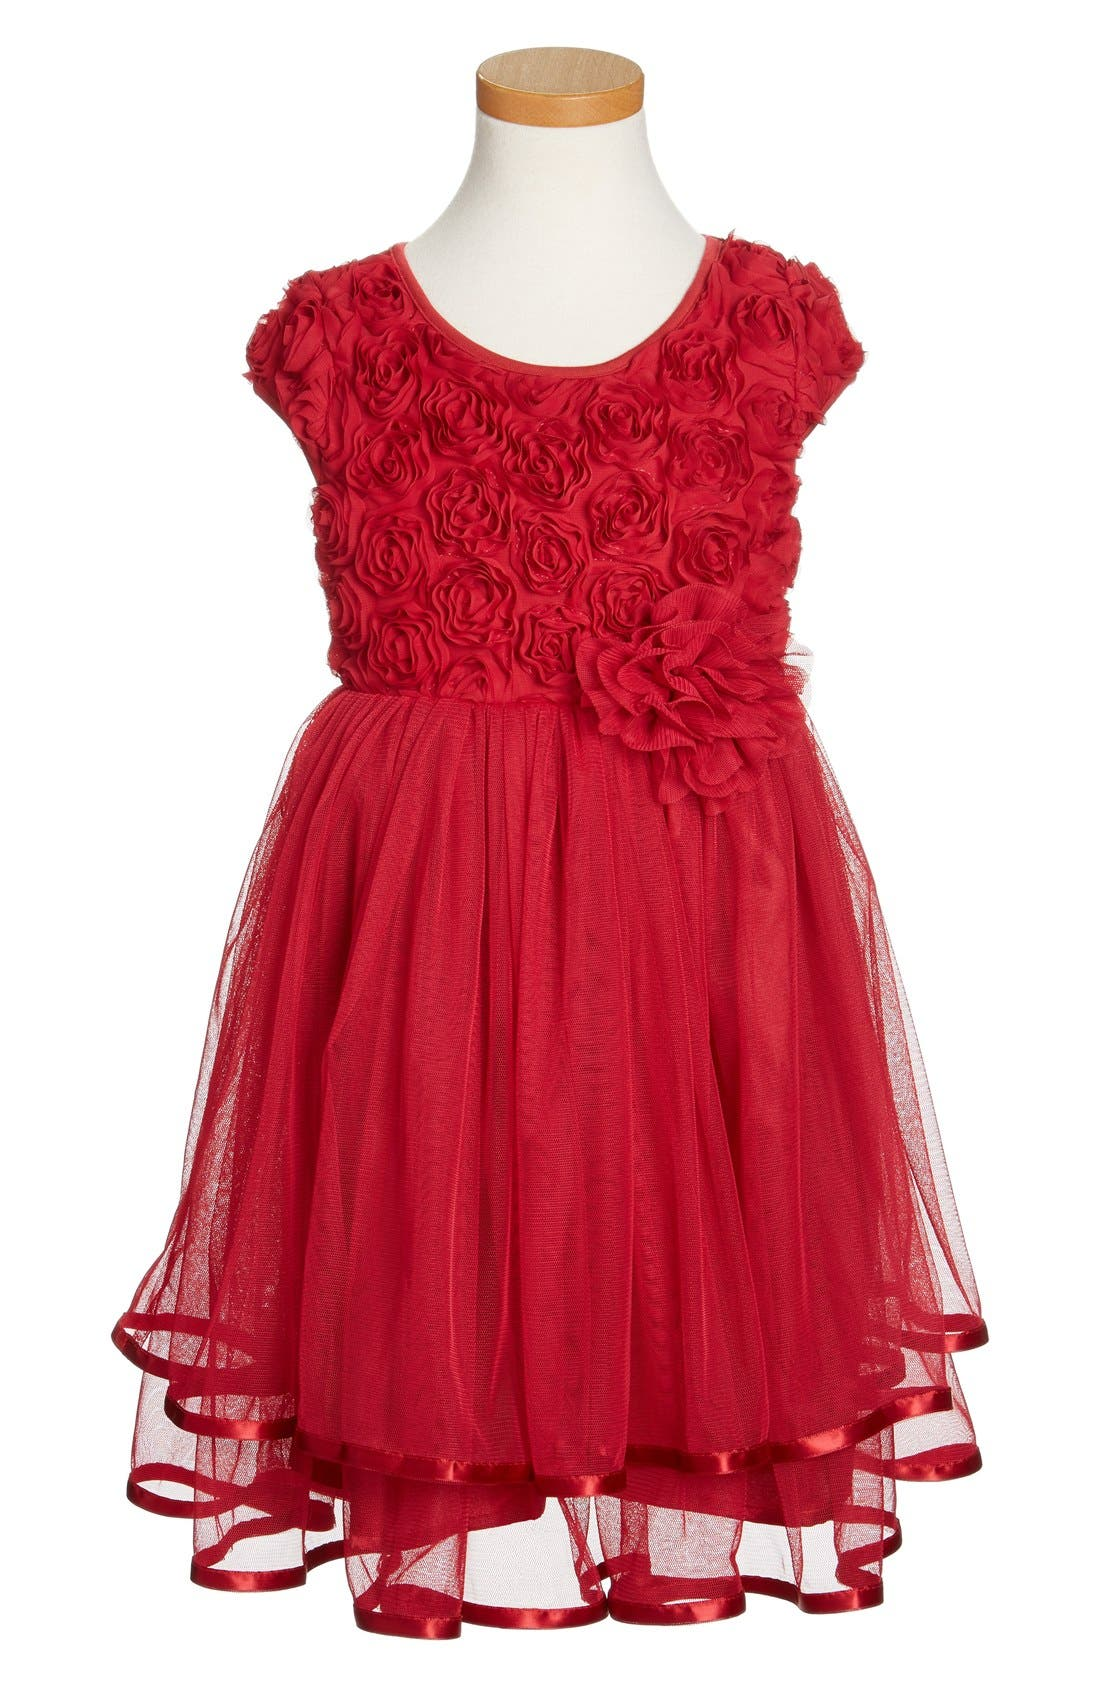 POPATU, Ribbon Rosette Tulle Dress, Main thumbnail 1, color, BURGUNDY